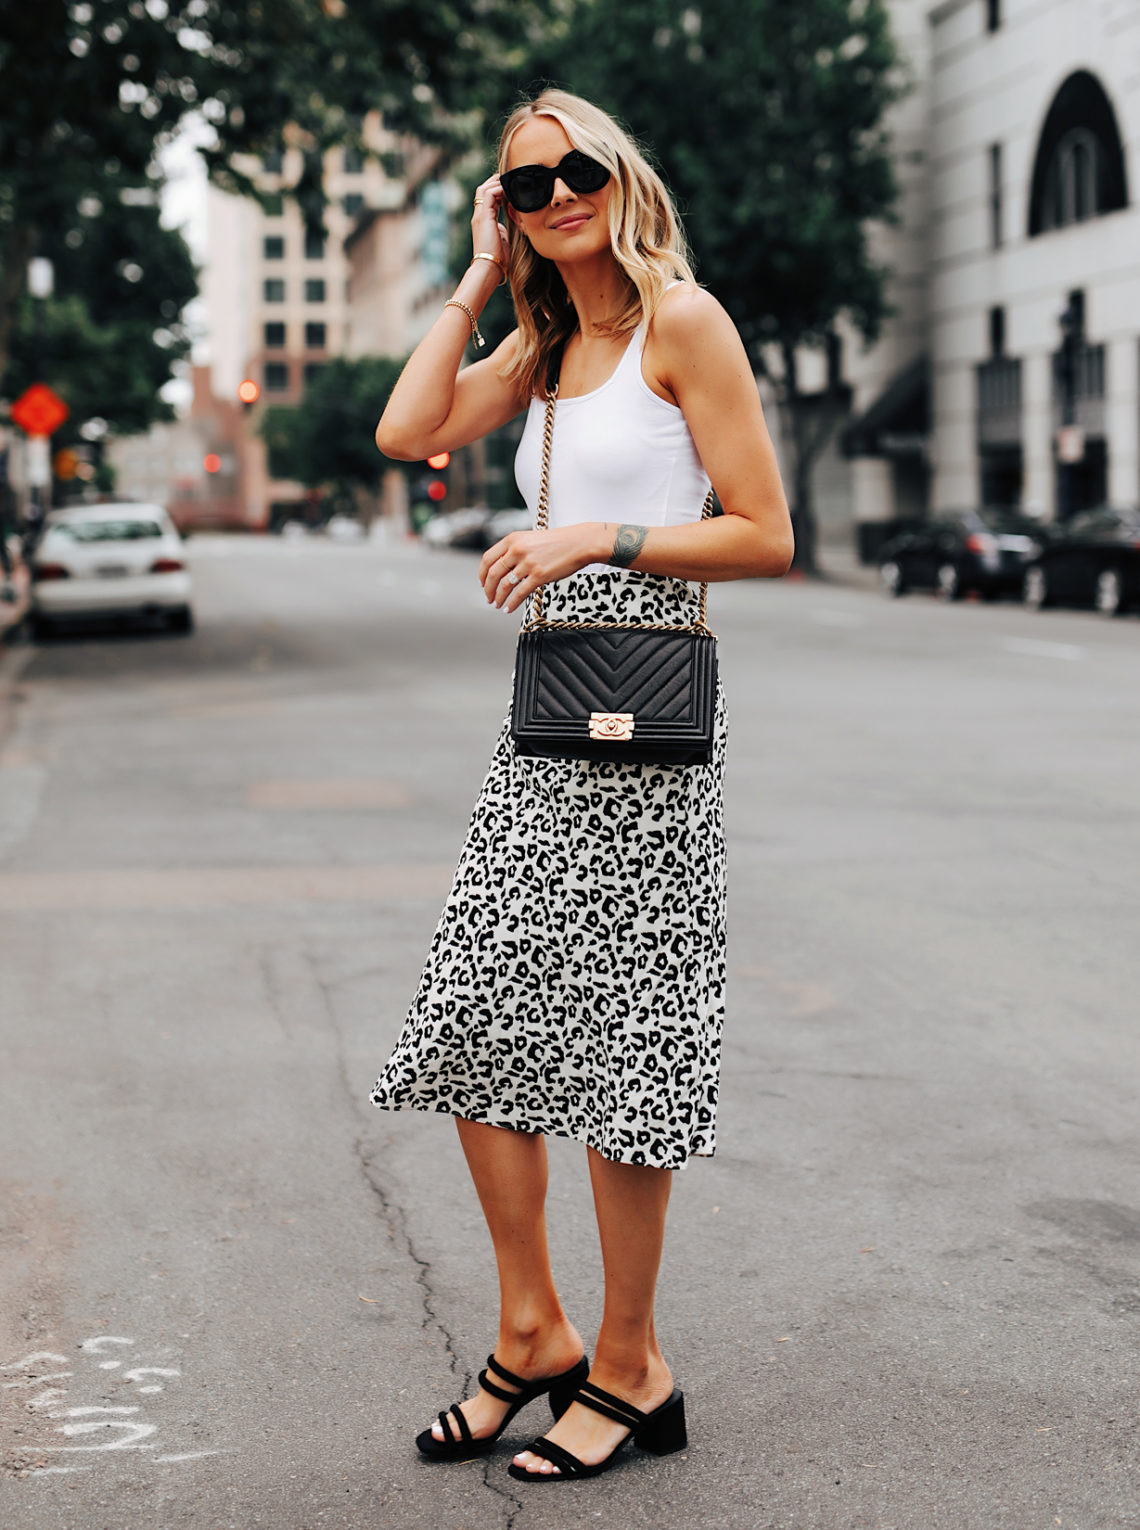 Fashion Jackson Wearing White Tank Leopard Midi Skrit Black Heeled Sandals Chanel Black Boy Bag Featured Image